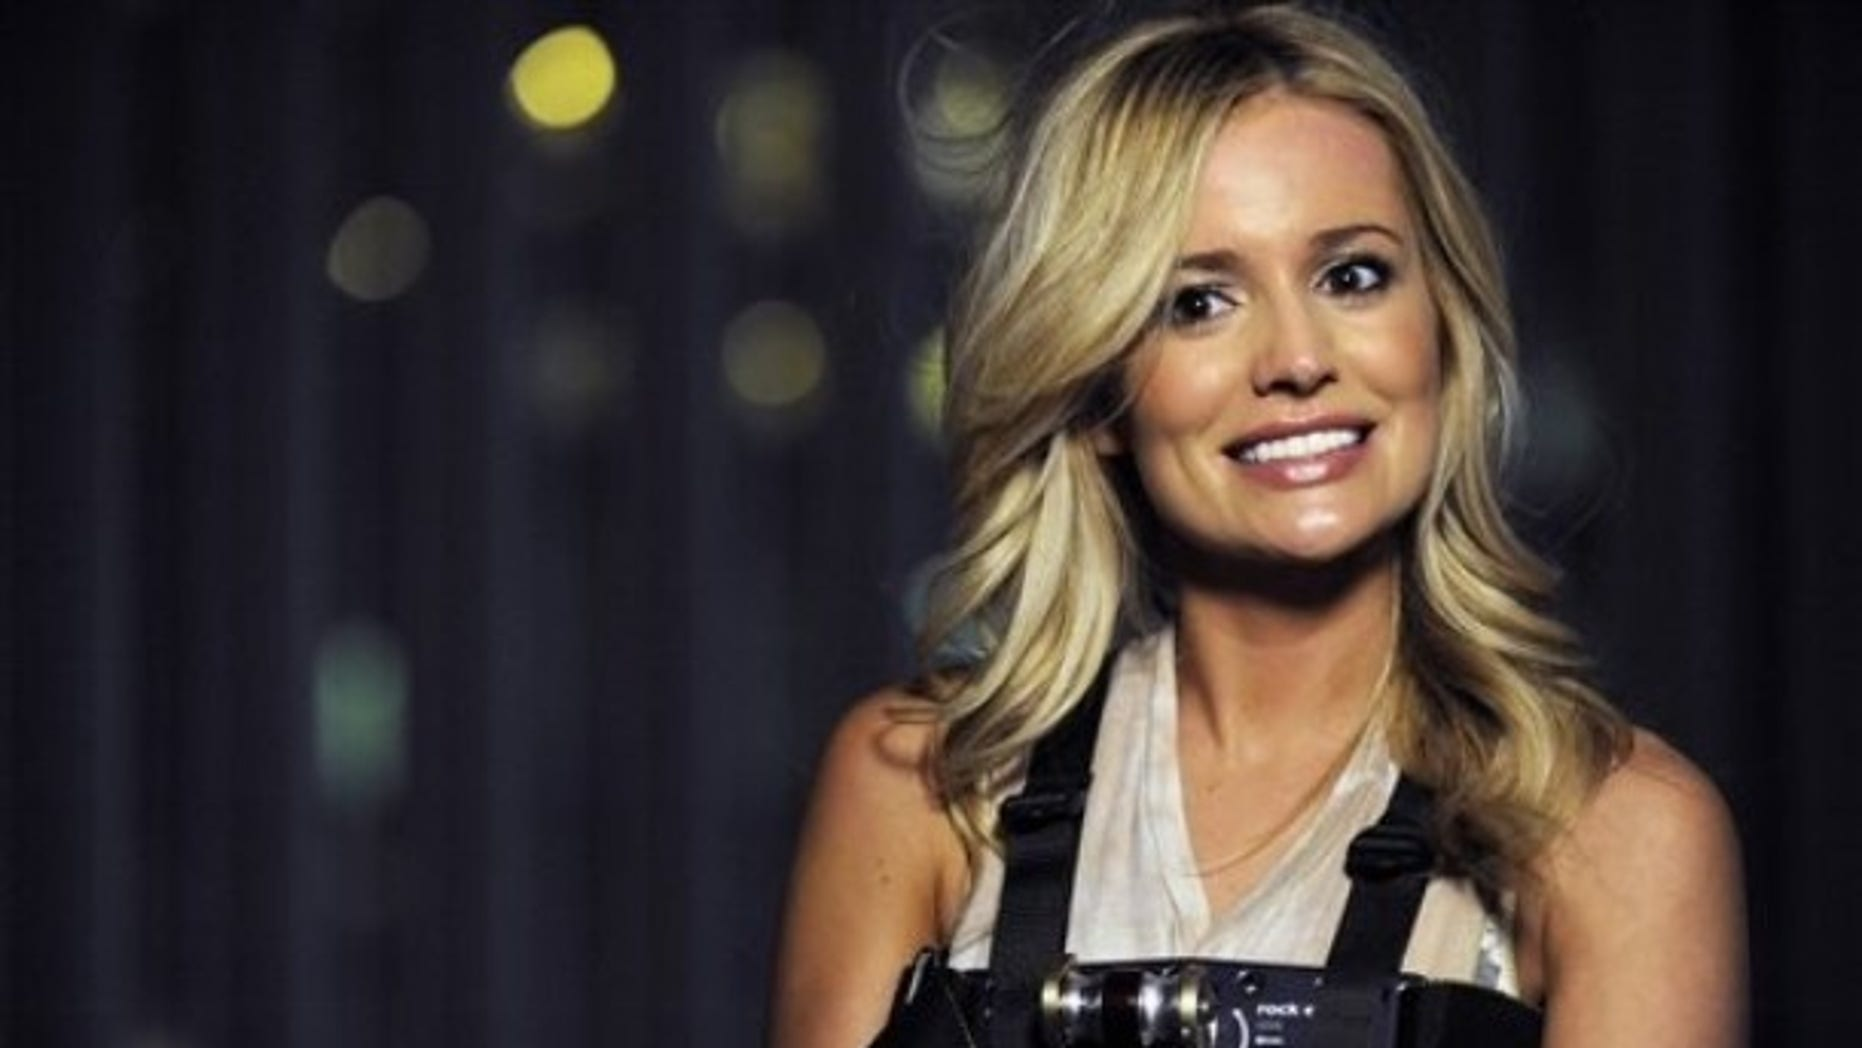 """March 2012. Emily Maynard, a former contestant on """"The Bachelor"""" and now the star of the latest season of """"The Bachelorette,""""  in Charlotte, N.C."""